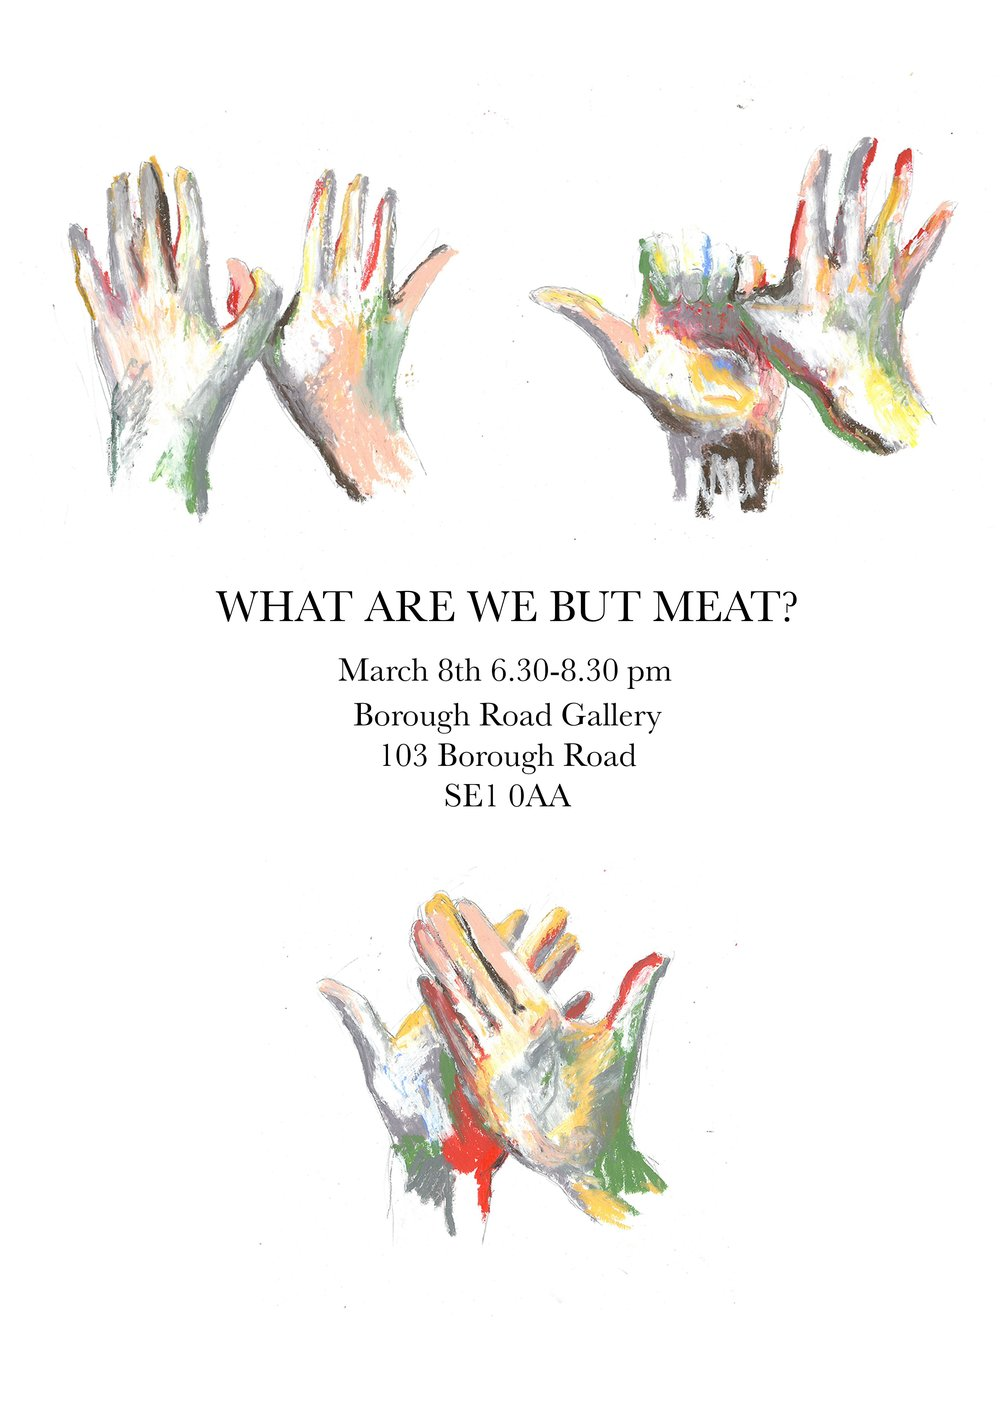 what are but meat poster 1.jpg